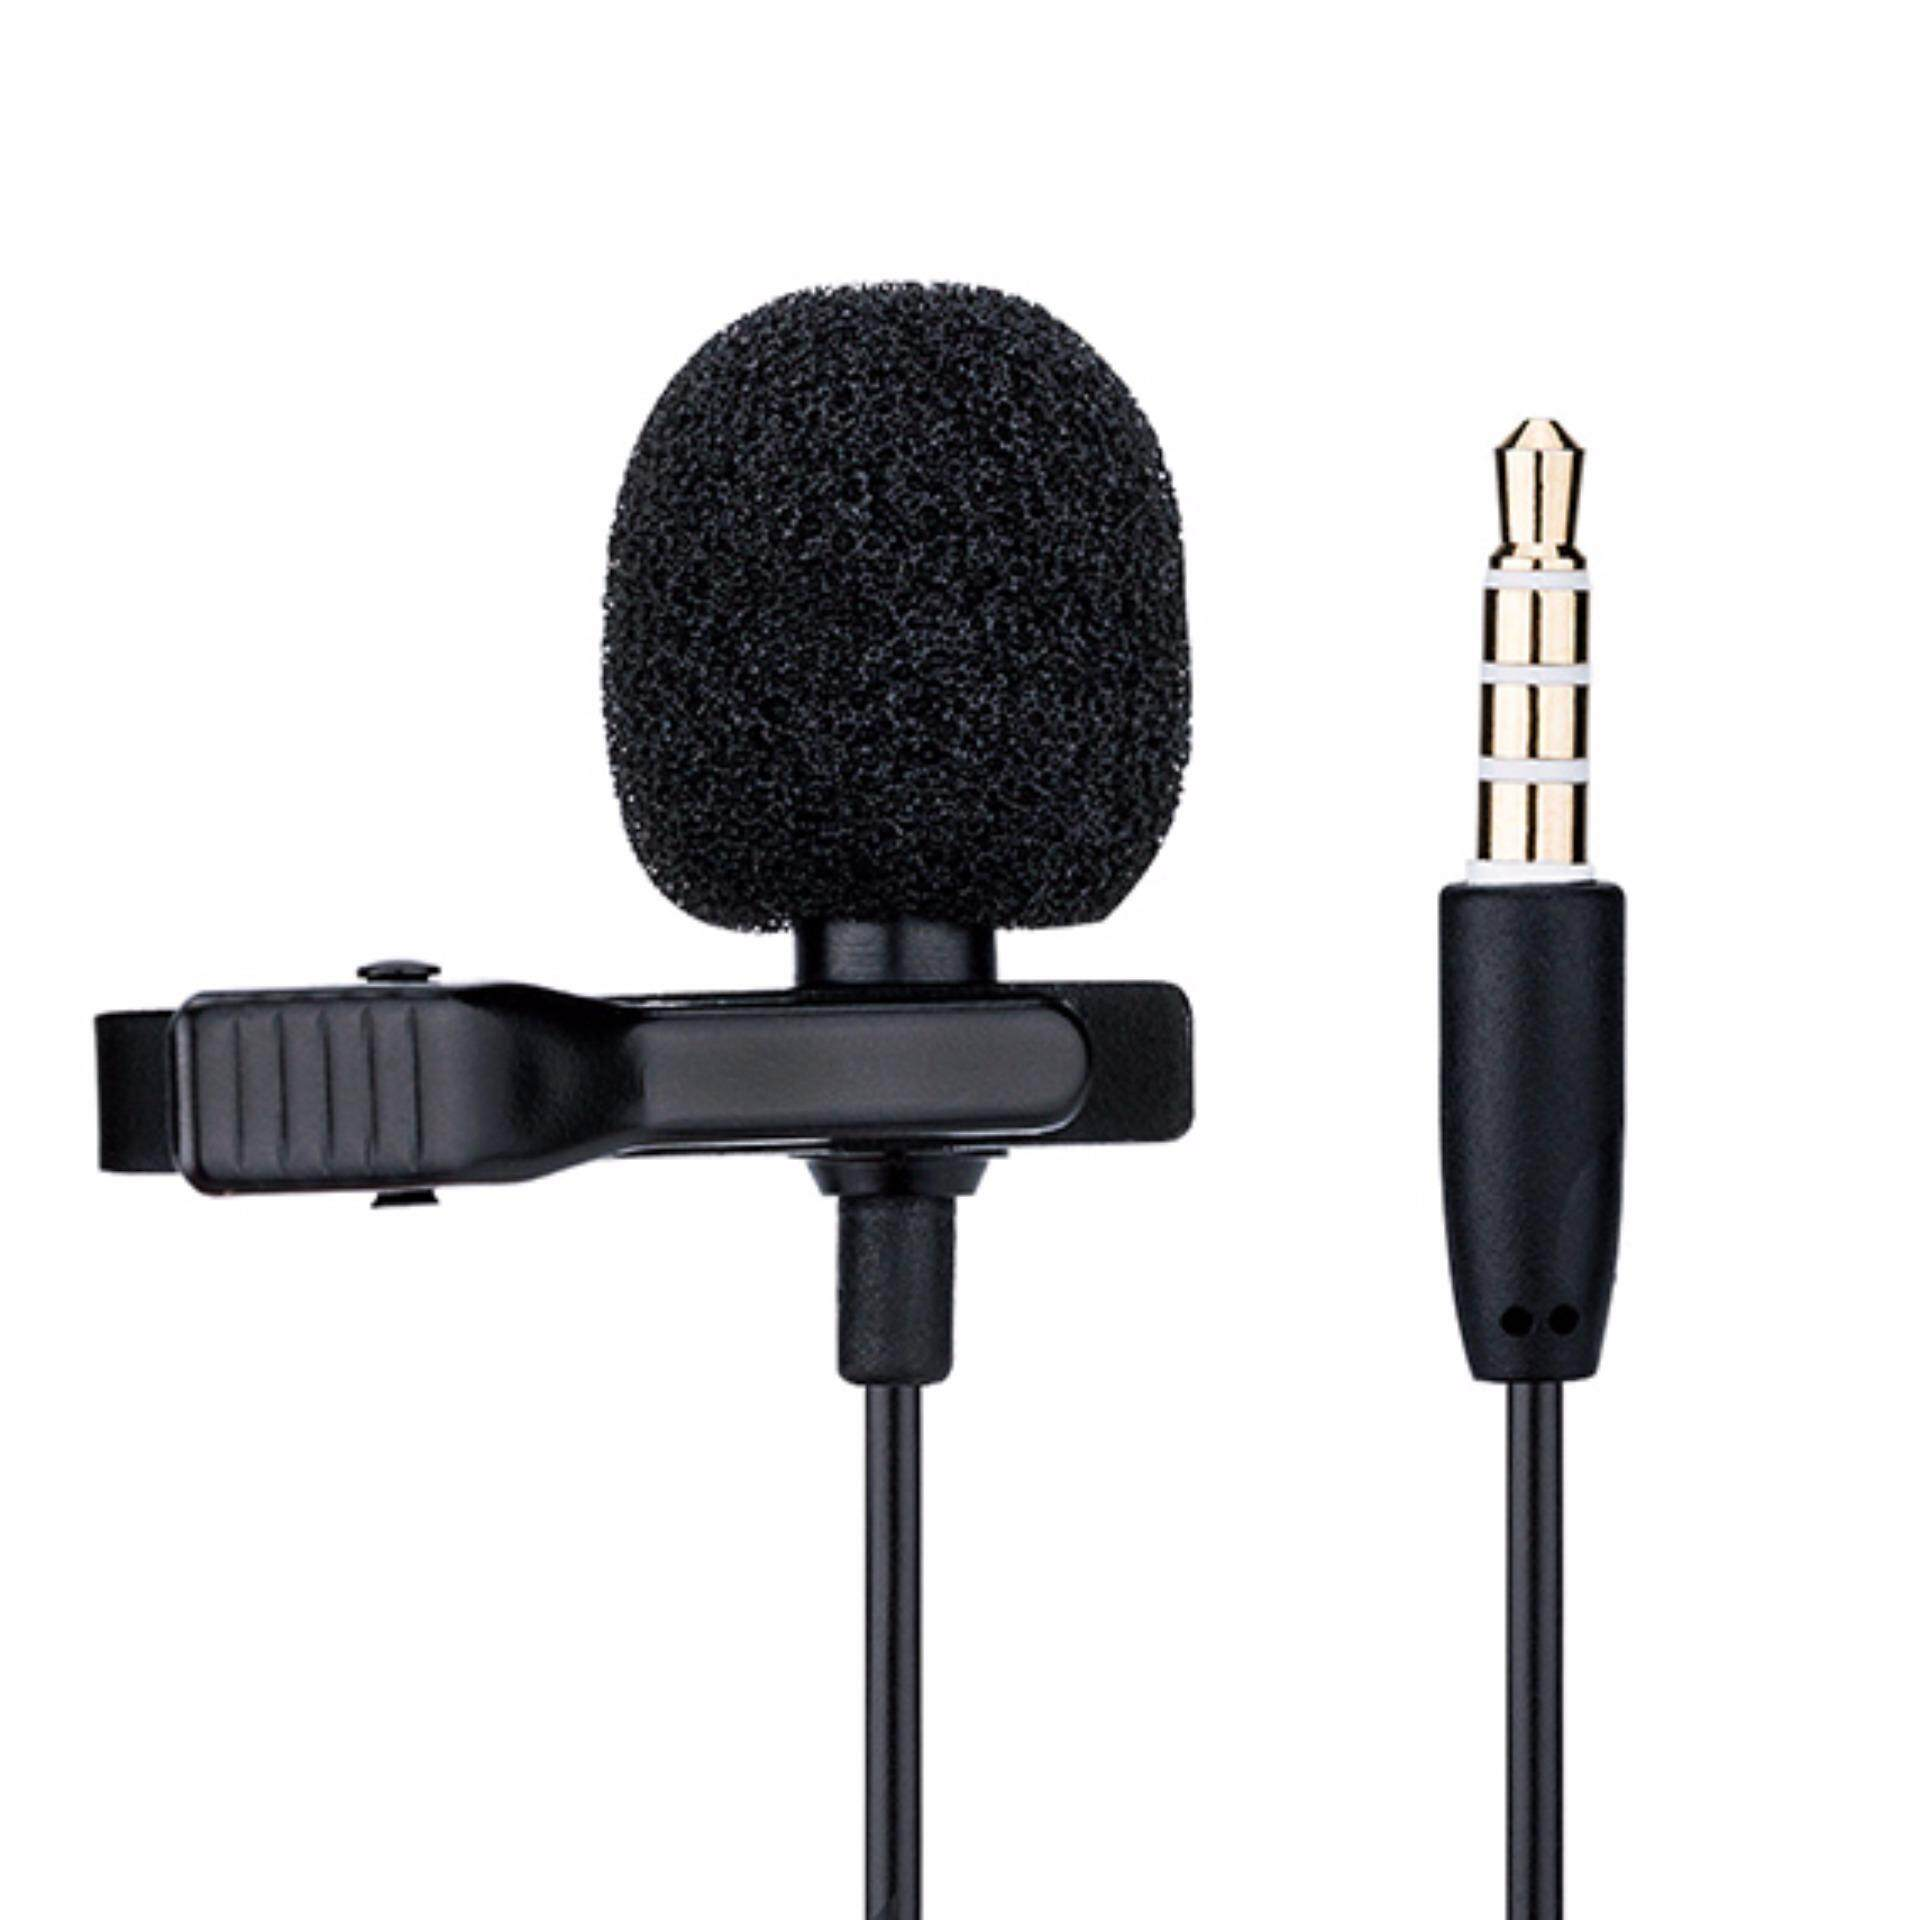 JJC Clip Mic for 3.5mm Mobile Phone Apple Samsung Vivo oppo Voice Record SGM-28 Lavalier Microphone